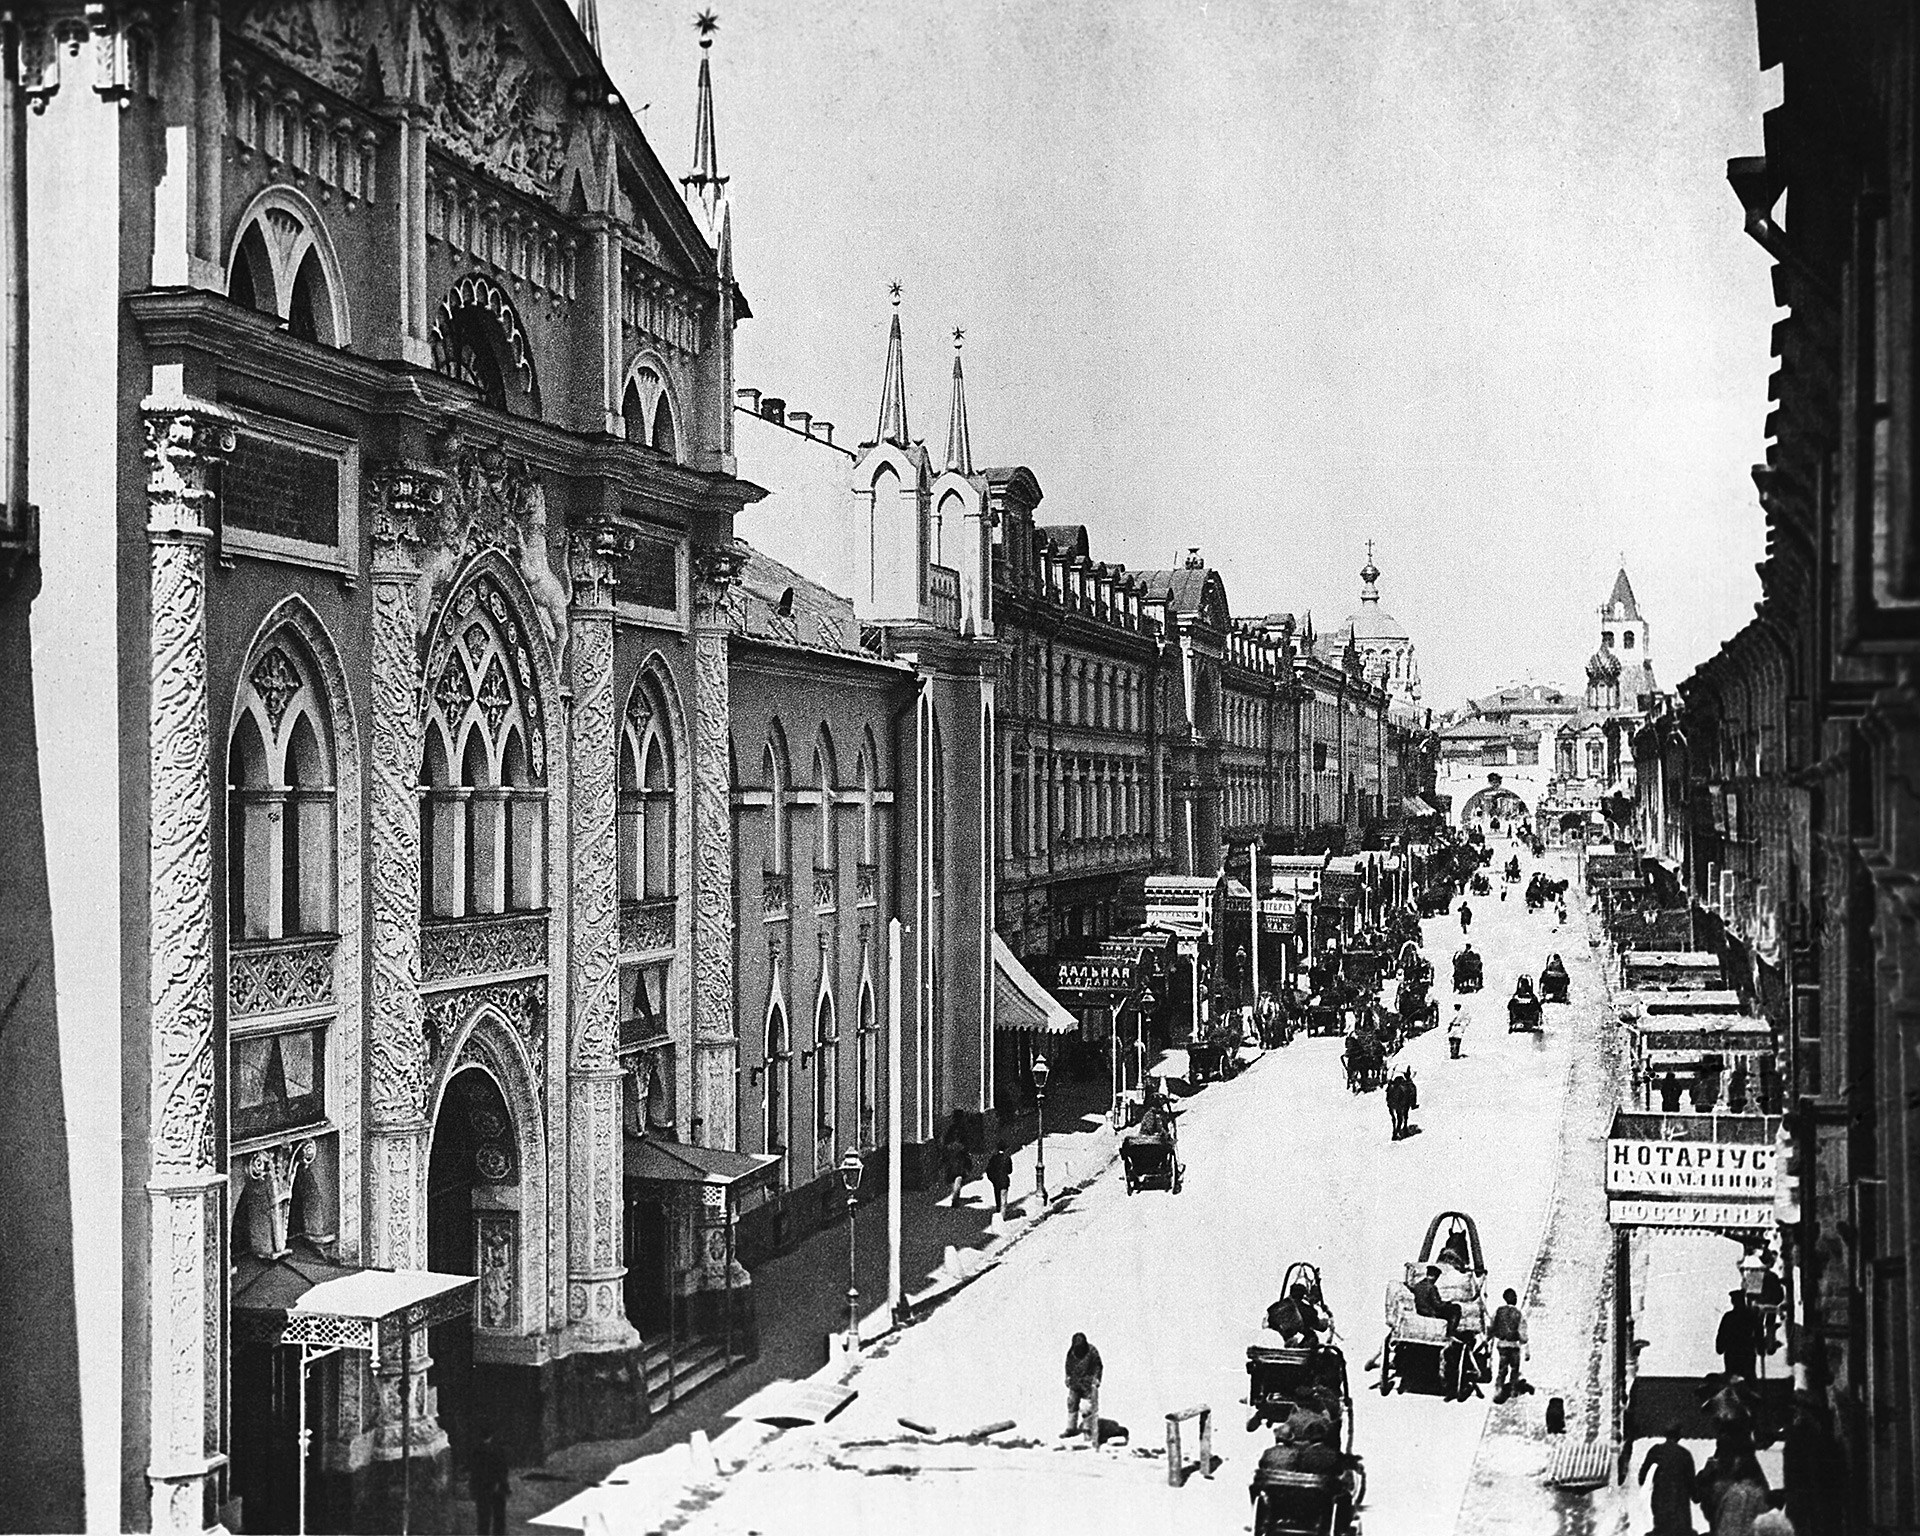 Nikolskaya street, early 20th century